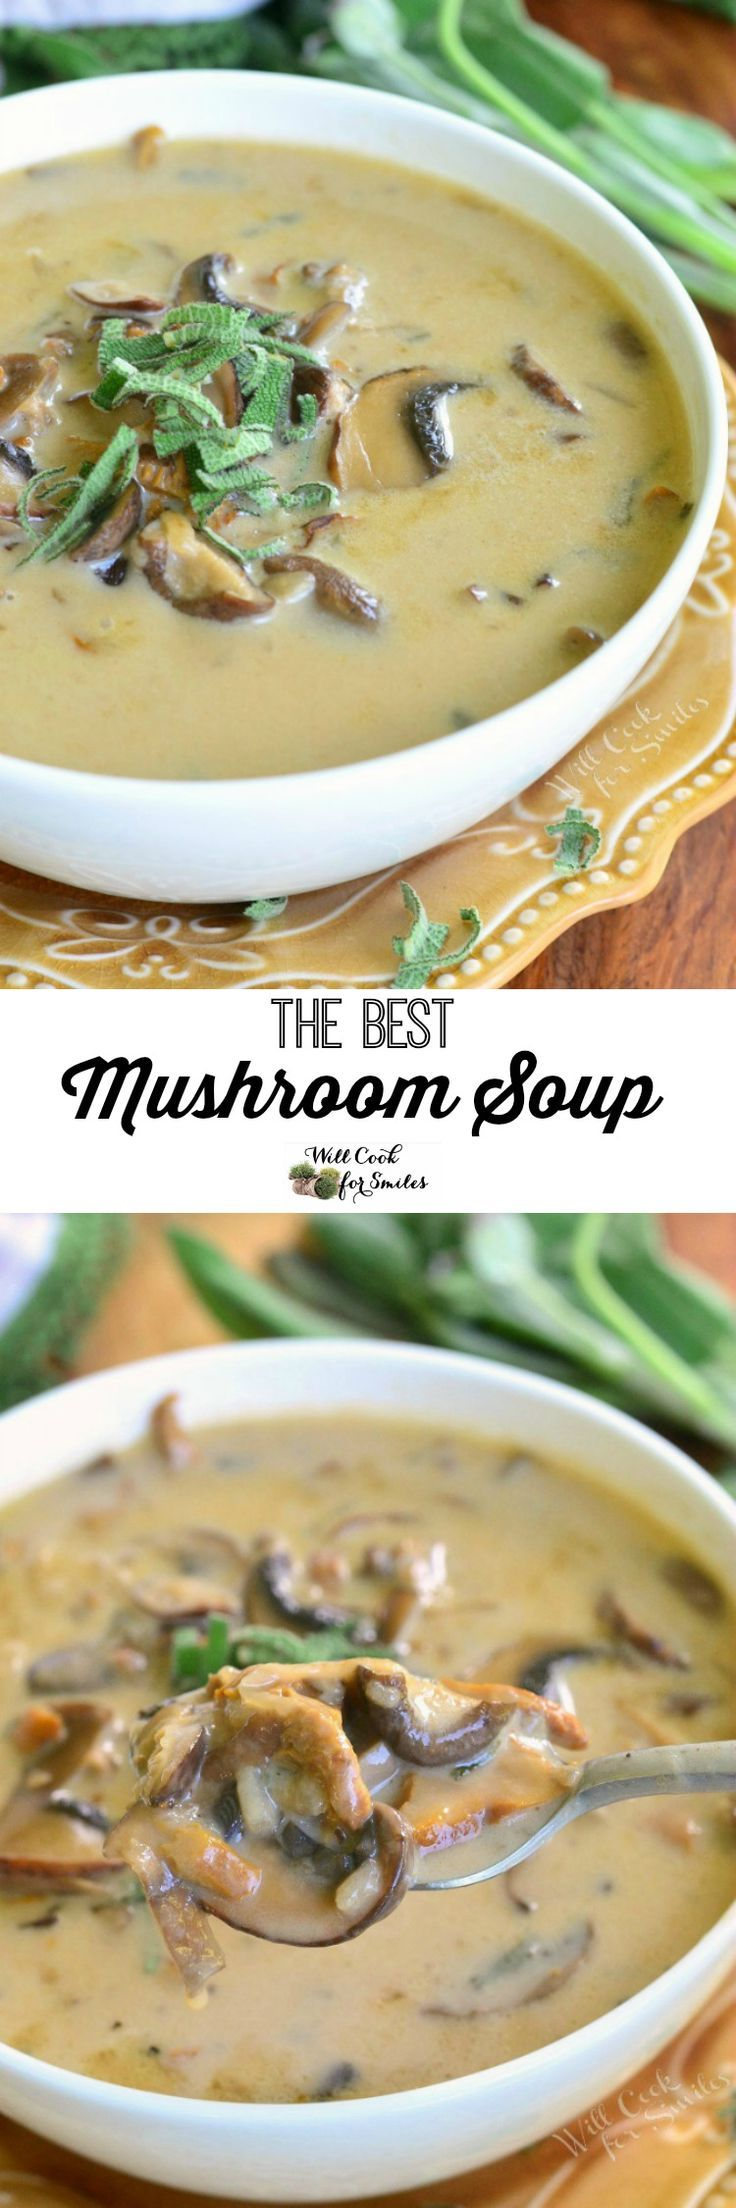 The Best Mushroom Soup The BEST Mushroom Soup This creamy soup is made with three types of mushrooms and fresh sage Its SIMPLE hearty and guaranteed to please every mushr...